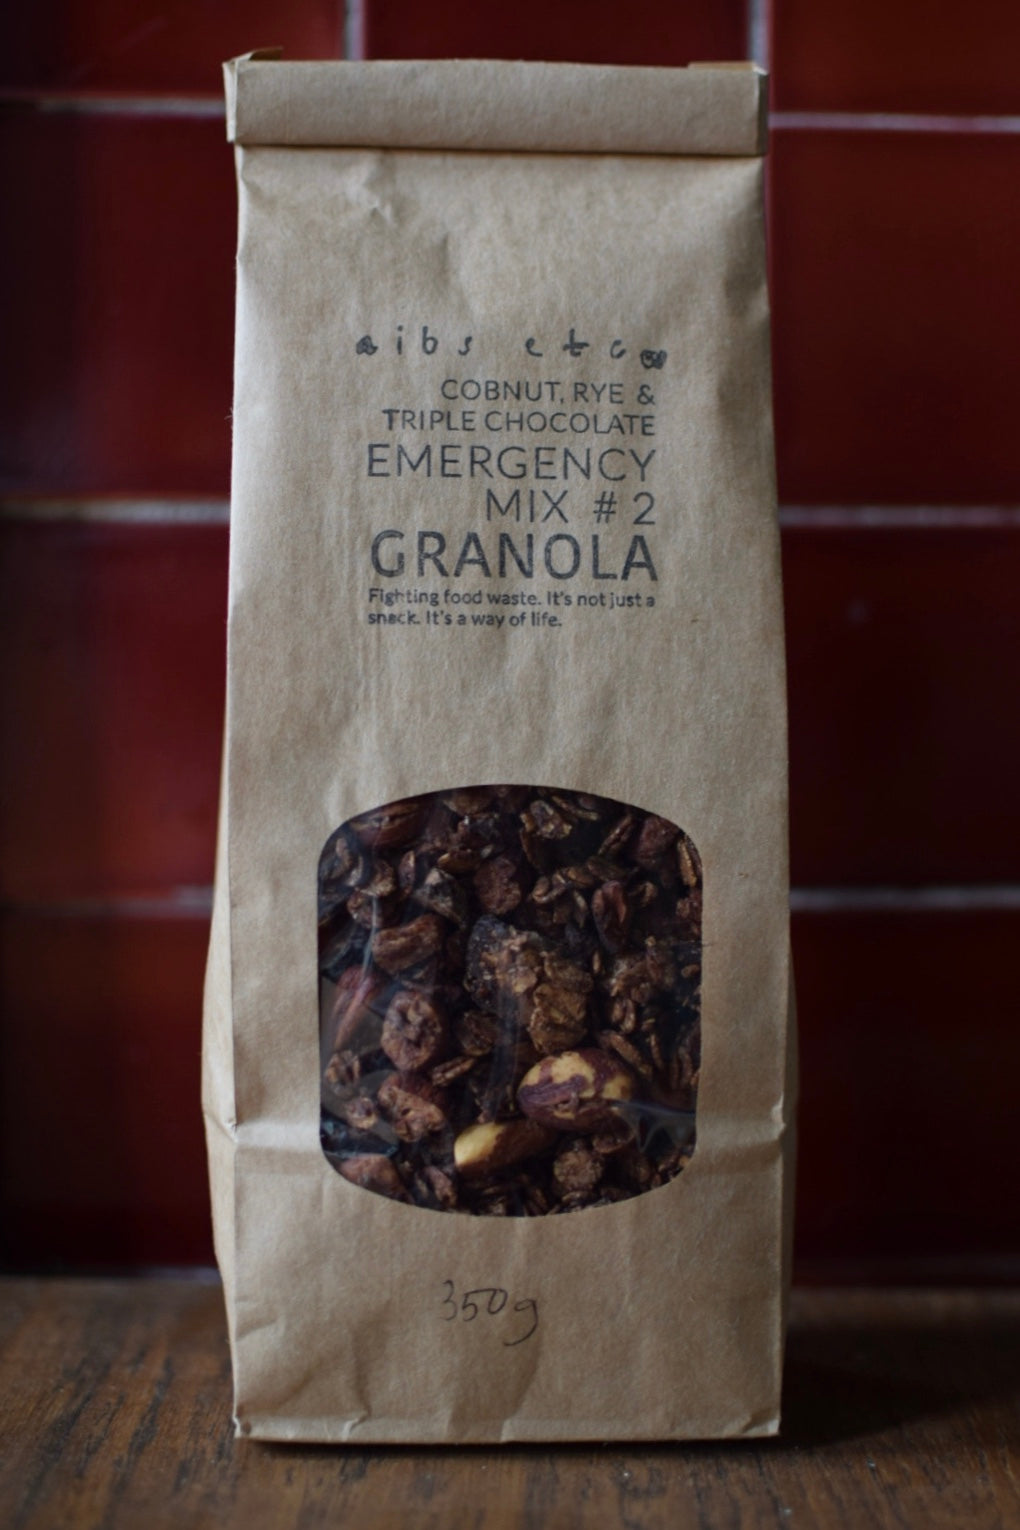 350g Rye, Cobnut & Triple Chocolate Granola, Emergency Mix #2